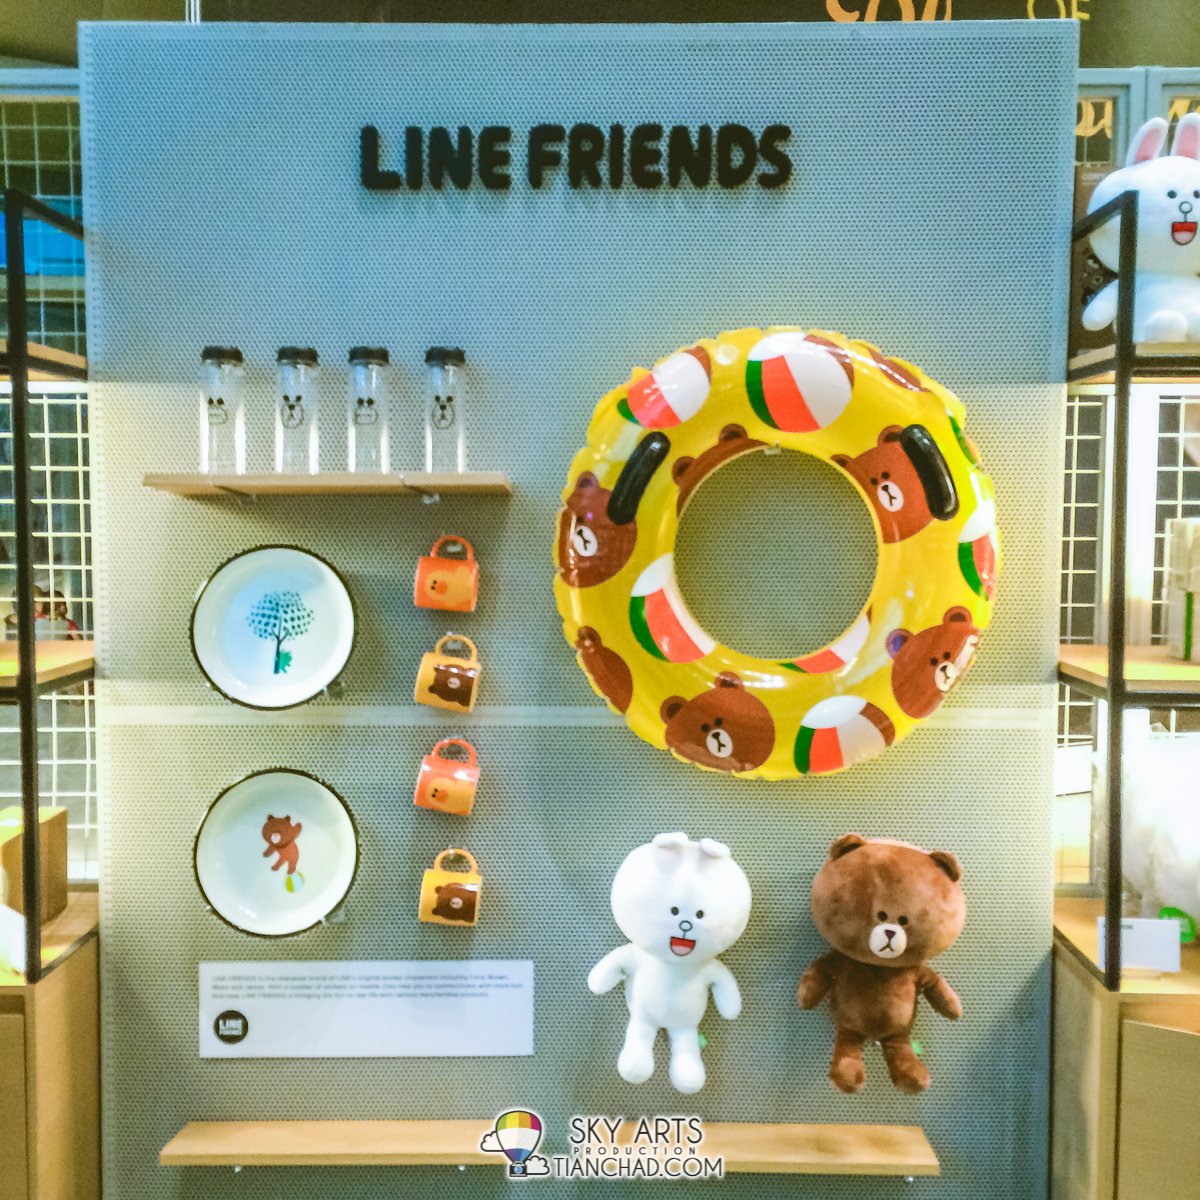 Cute float for your childrenat LINE Friends Pop-Up Store!!